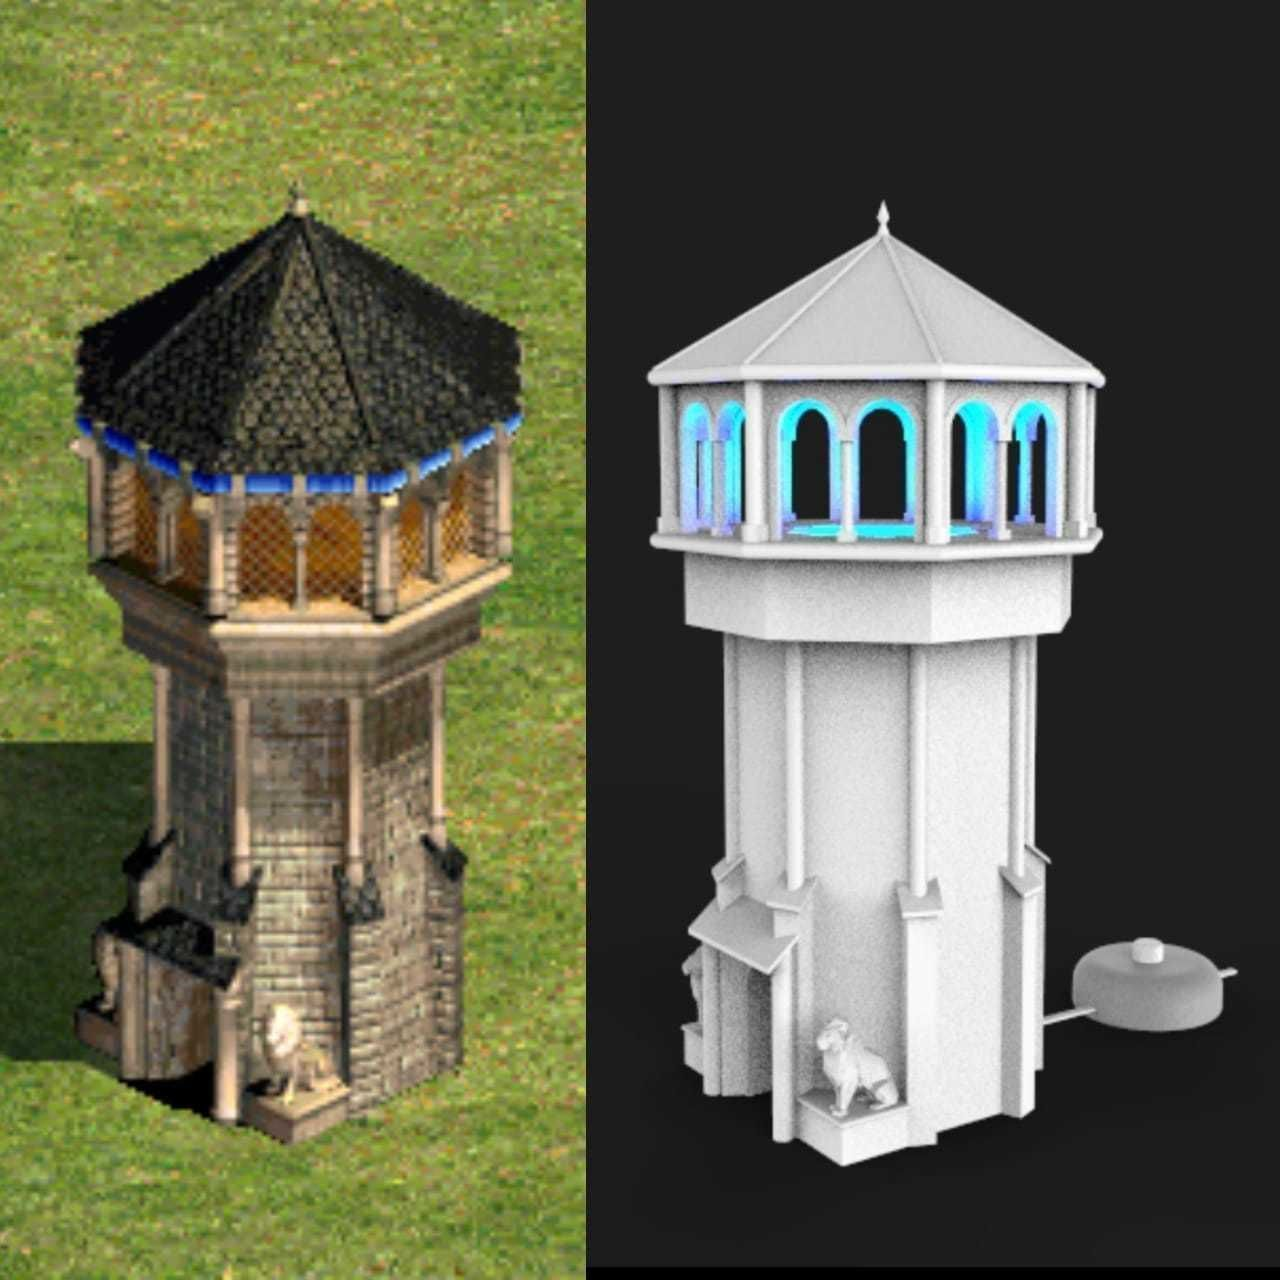 Tower Lamp Age Of Empires 2 Western Europe 3d Print Model In 2020 Age Of Empires Print Models 3d Printing